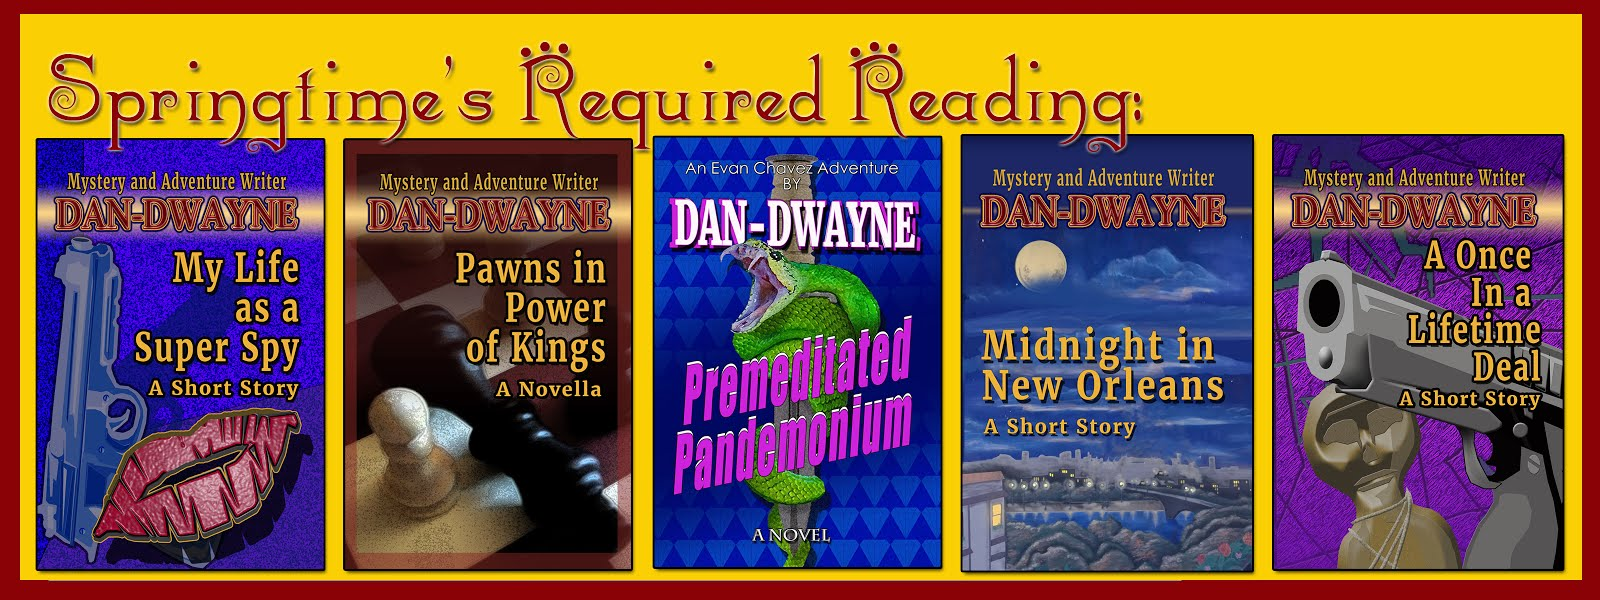 Books by Dan-Dwayne